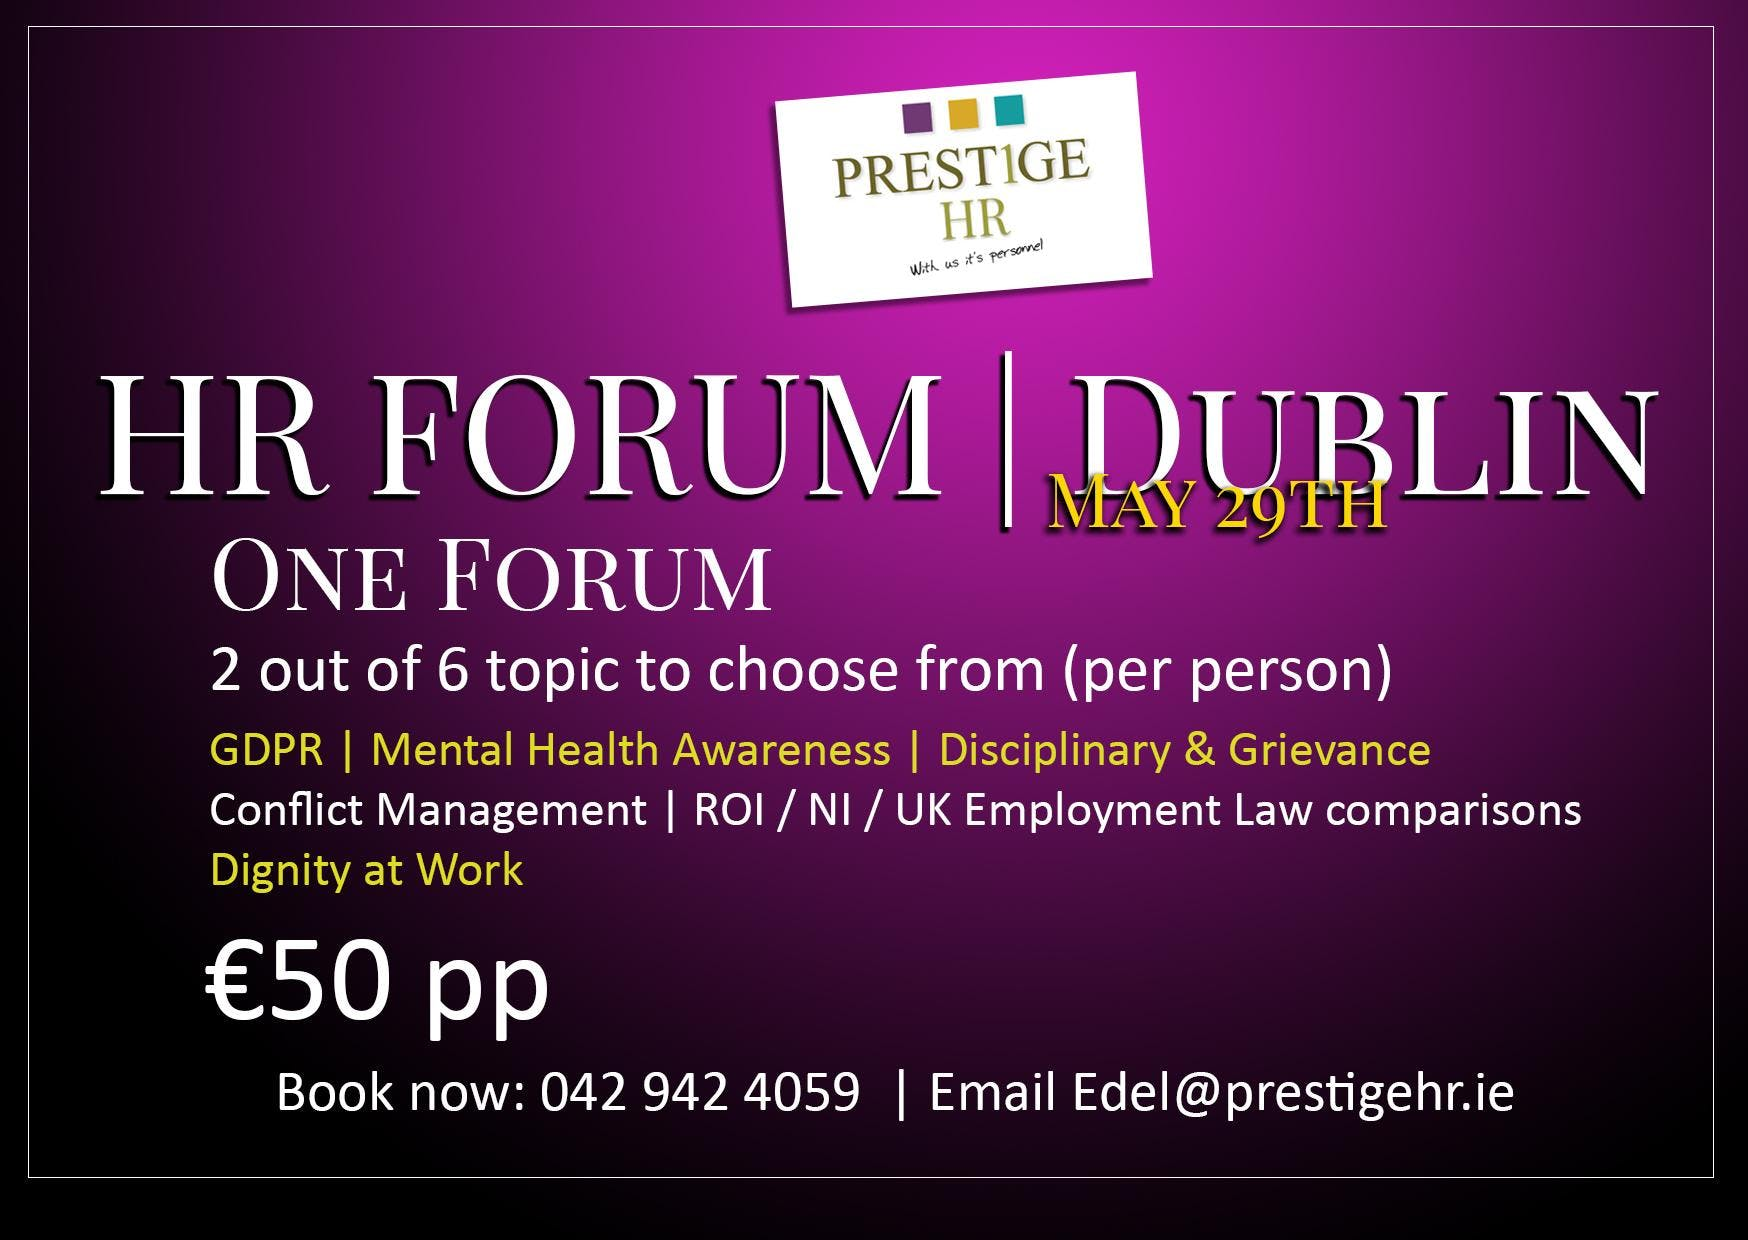 HR Forum Dublin Pick Your Topics